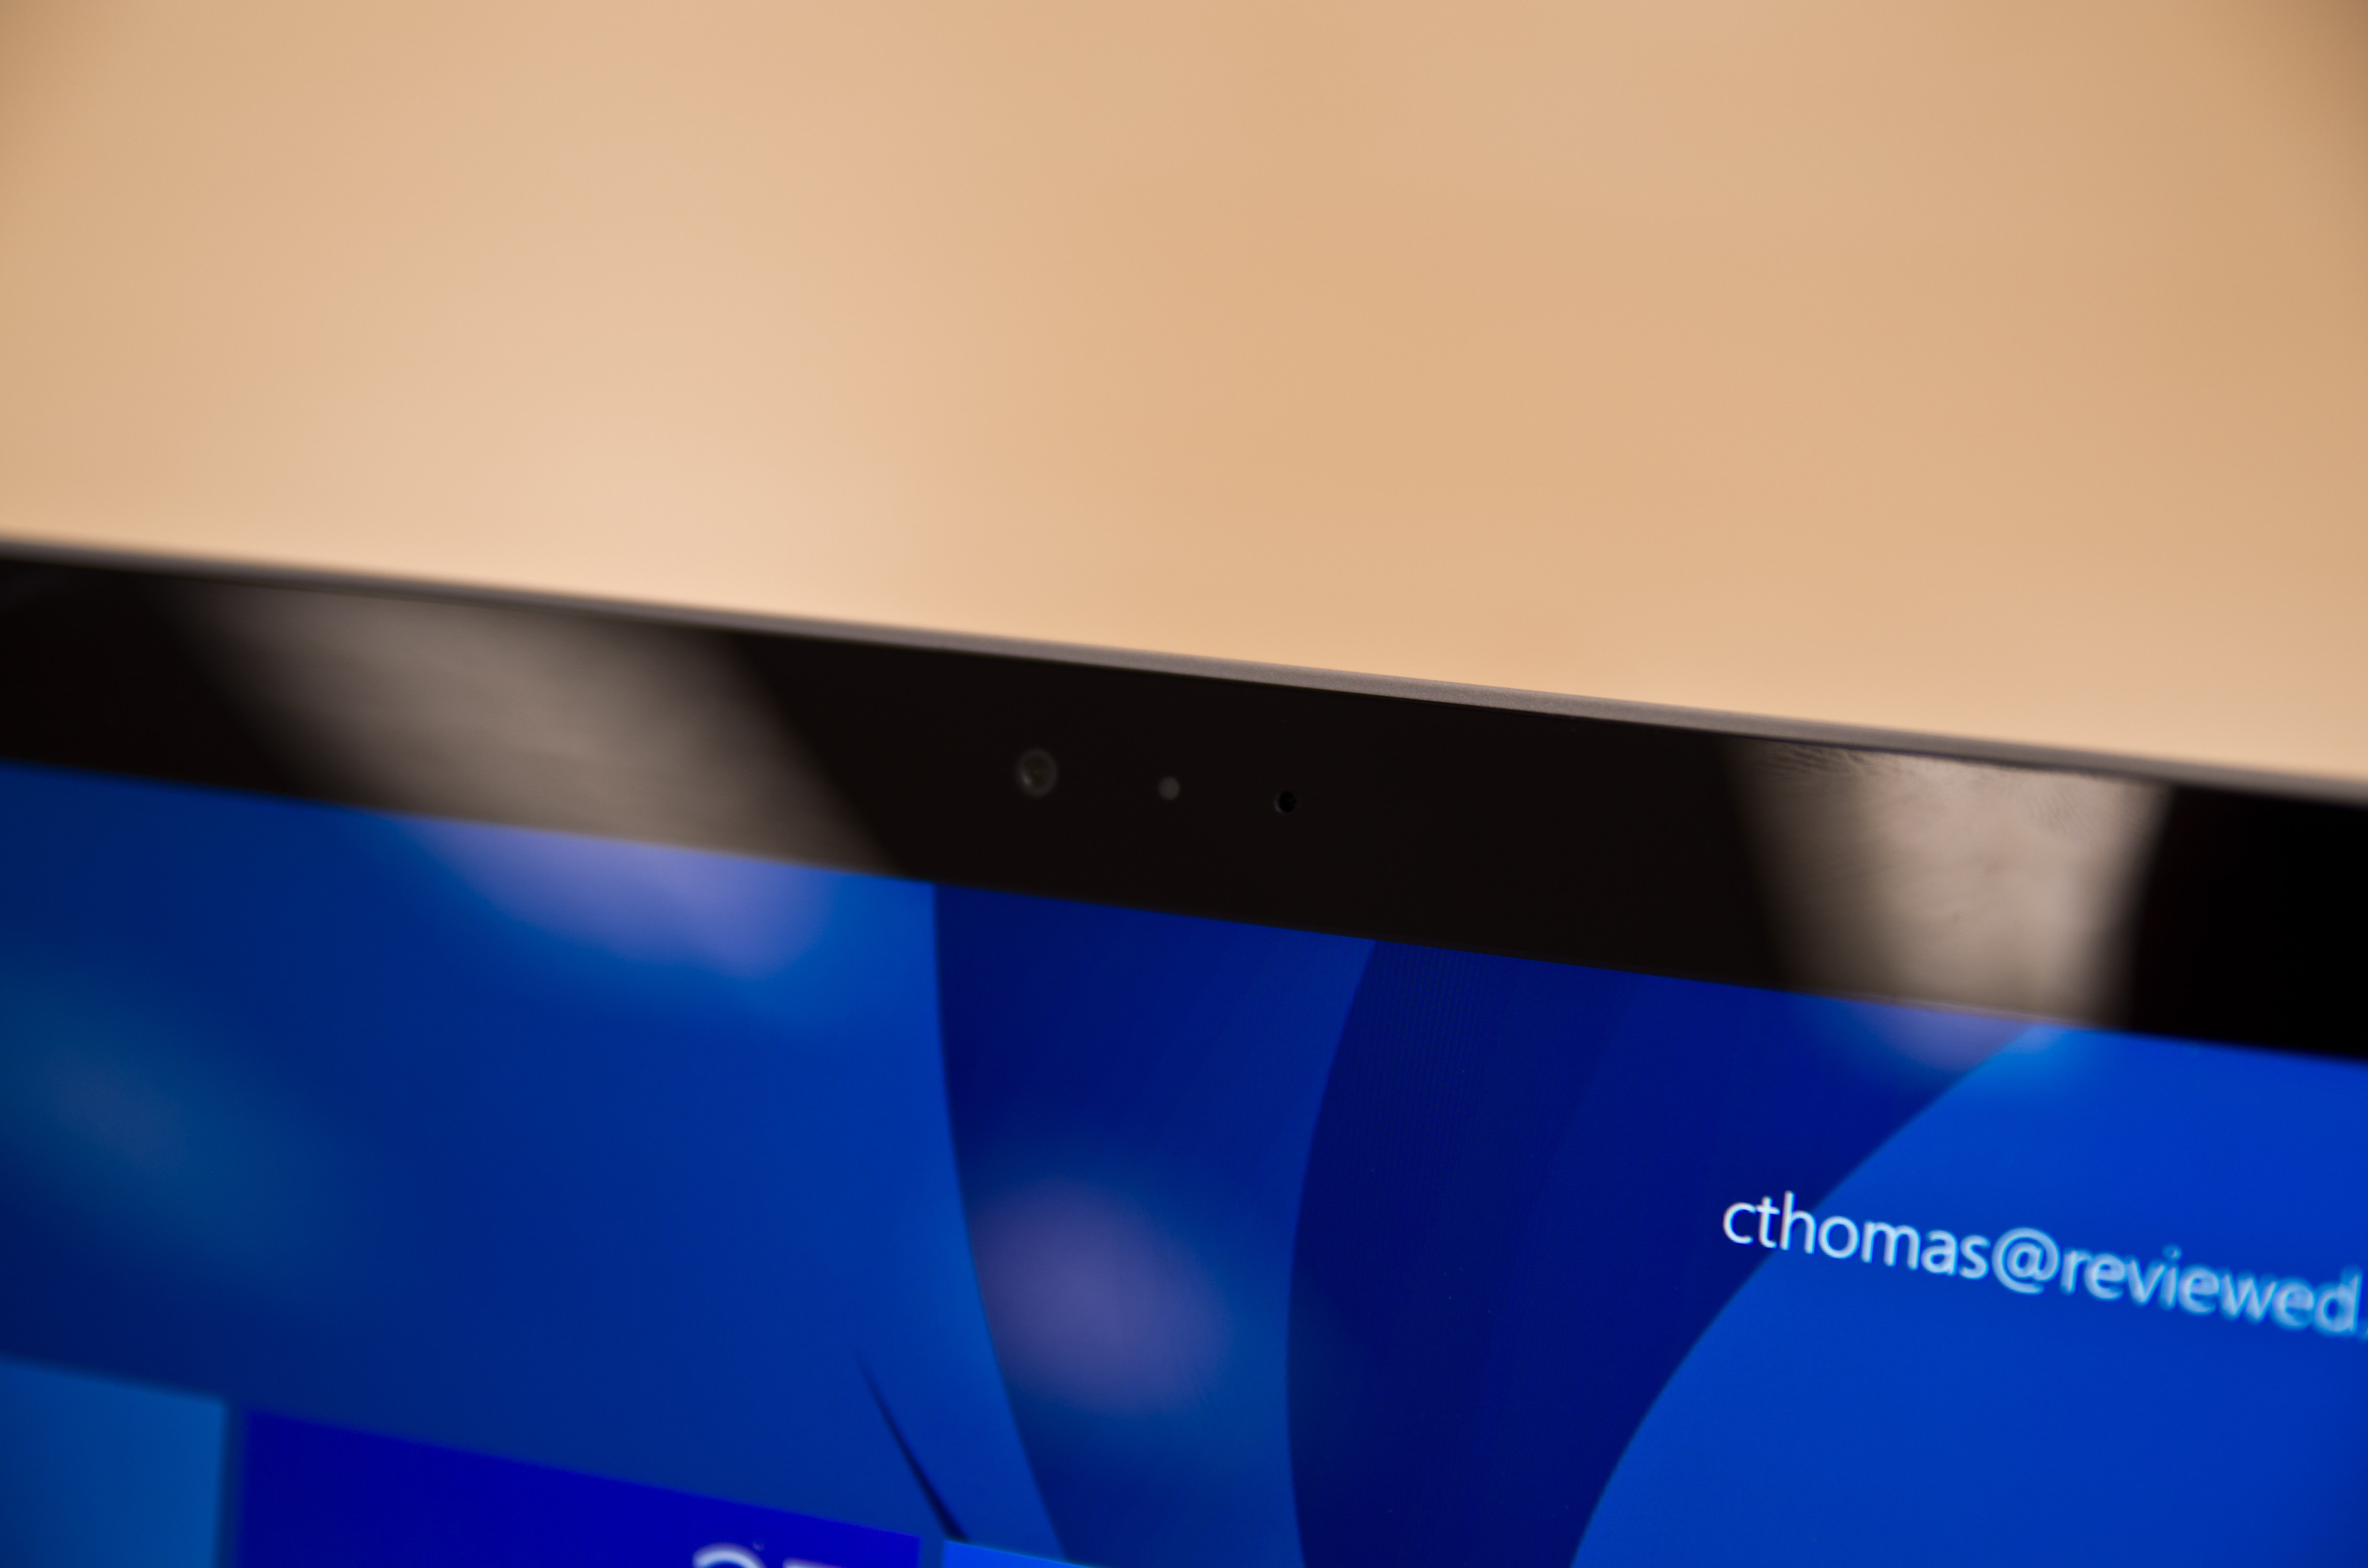 A closer look at the Microsoft Surface Pro 3's user-facing camera.